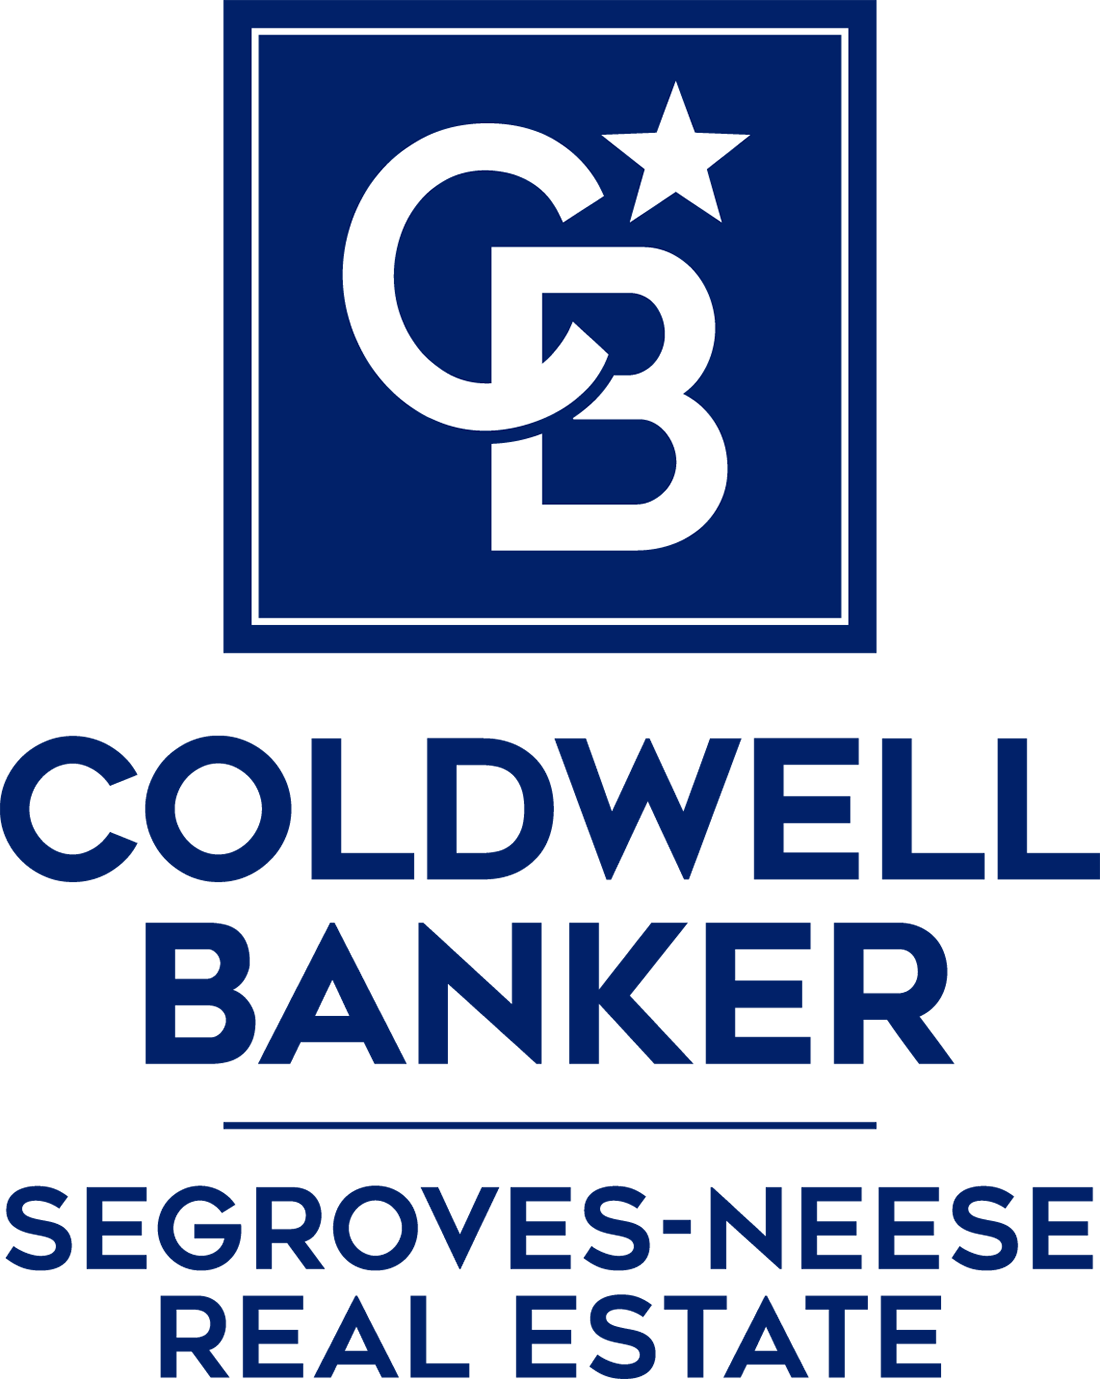 Coldwell Banker Segroves Neese Real Estate